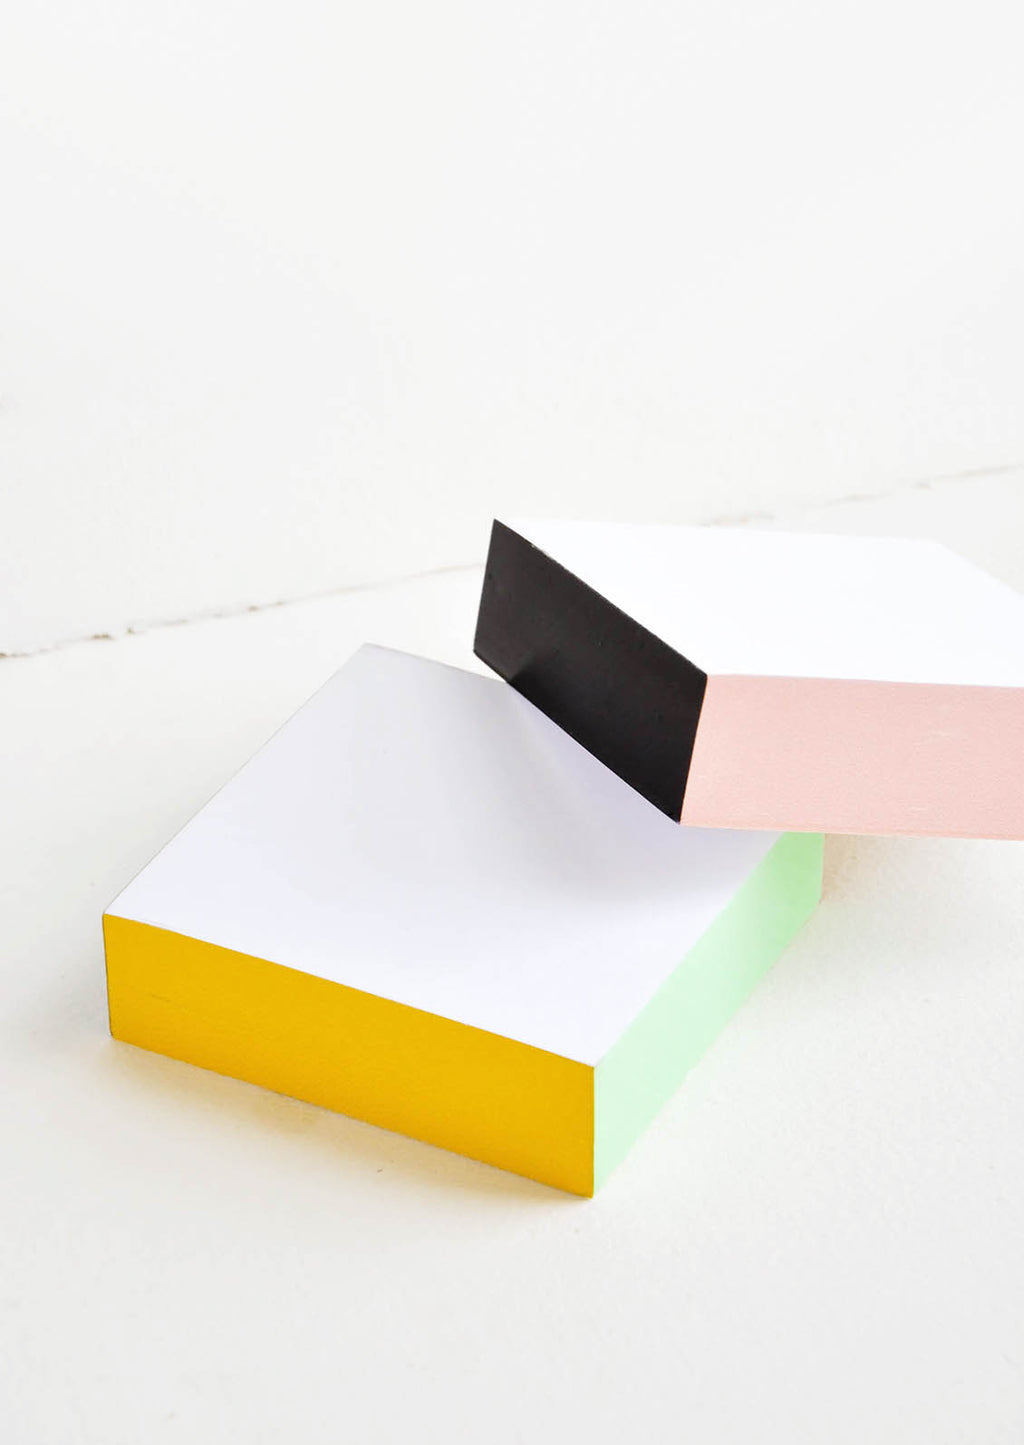 1: Two small square notepads with white unlined paper, one has edges painted yellow/green, the other is black/pink.